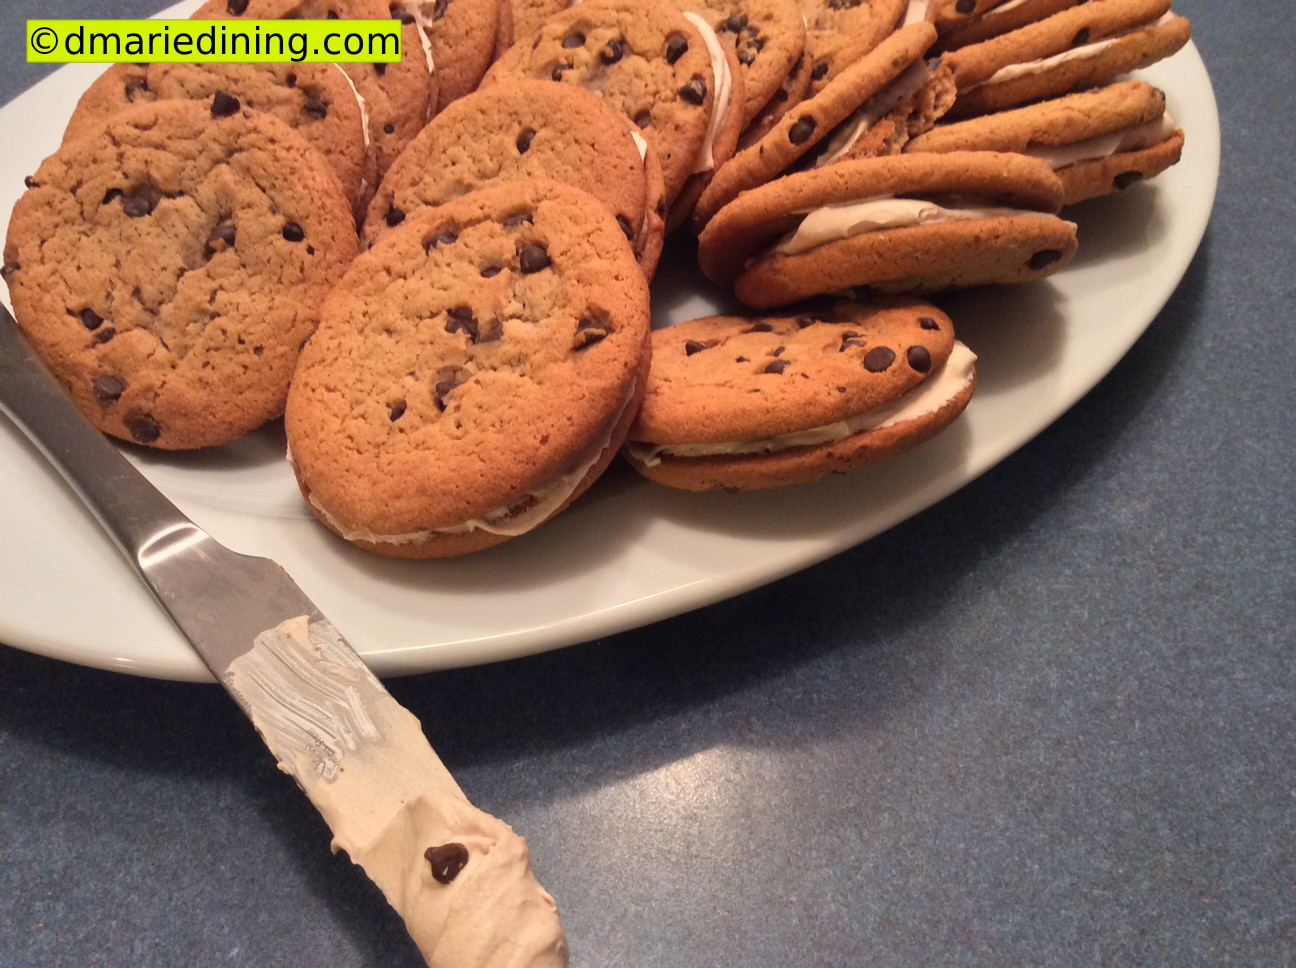 Crumbs Cookies And Cakes Jeans Reviews